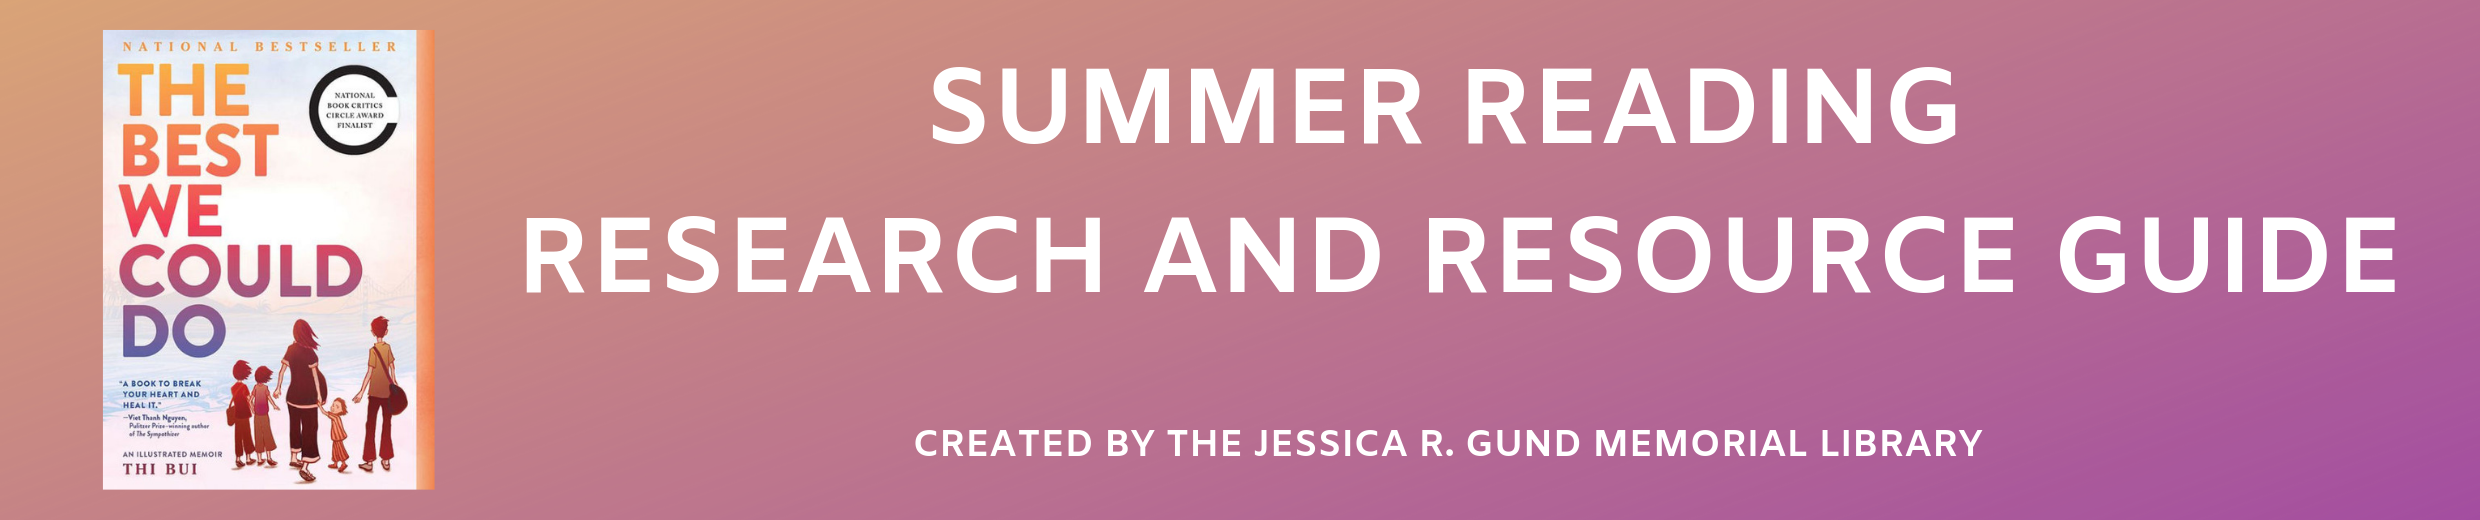 Summer Reading Research and Resource Guide. Created by the Jessica R. Gund Memorial Library.